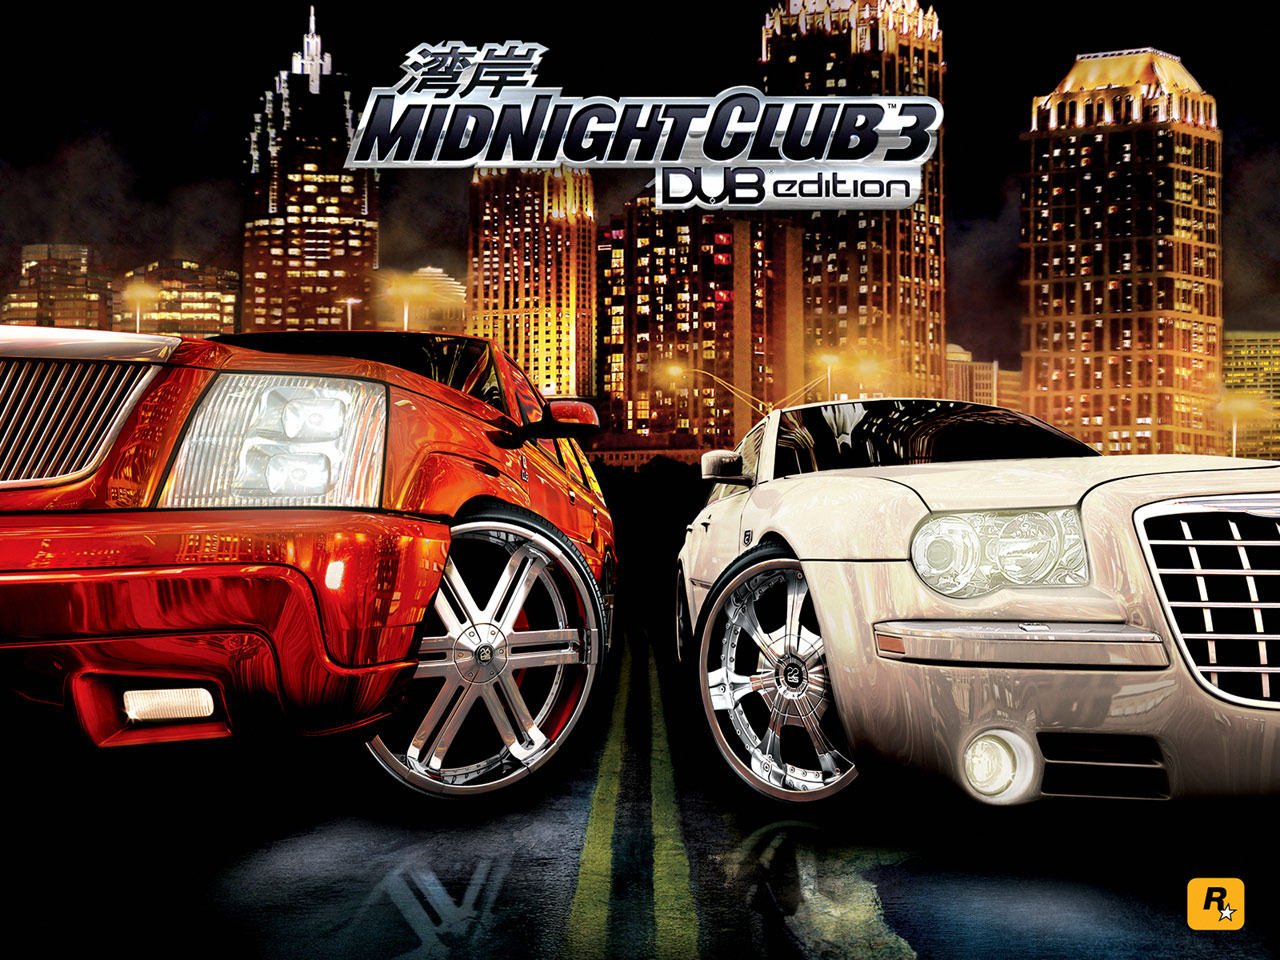 http://www.tiptoptens.com/wp-content/uploads/2011/03/Midnight_Club_3_DUB_Edition.jpg